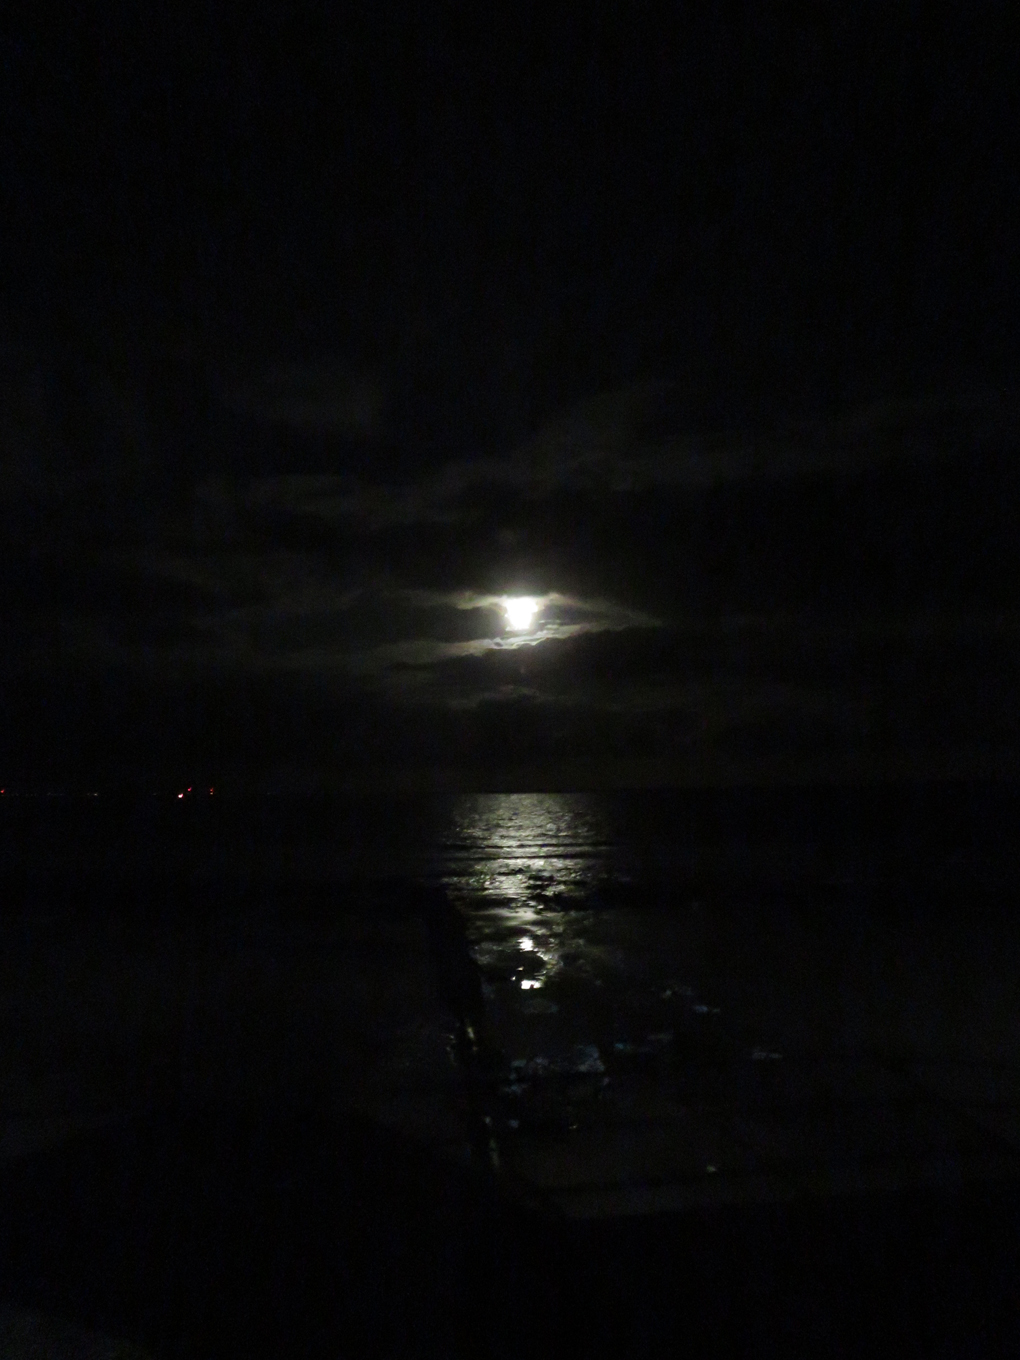 We see an almost black and white picture of the moon and its reflection on the sea at night